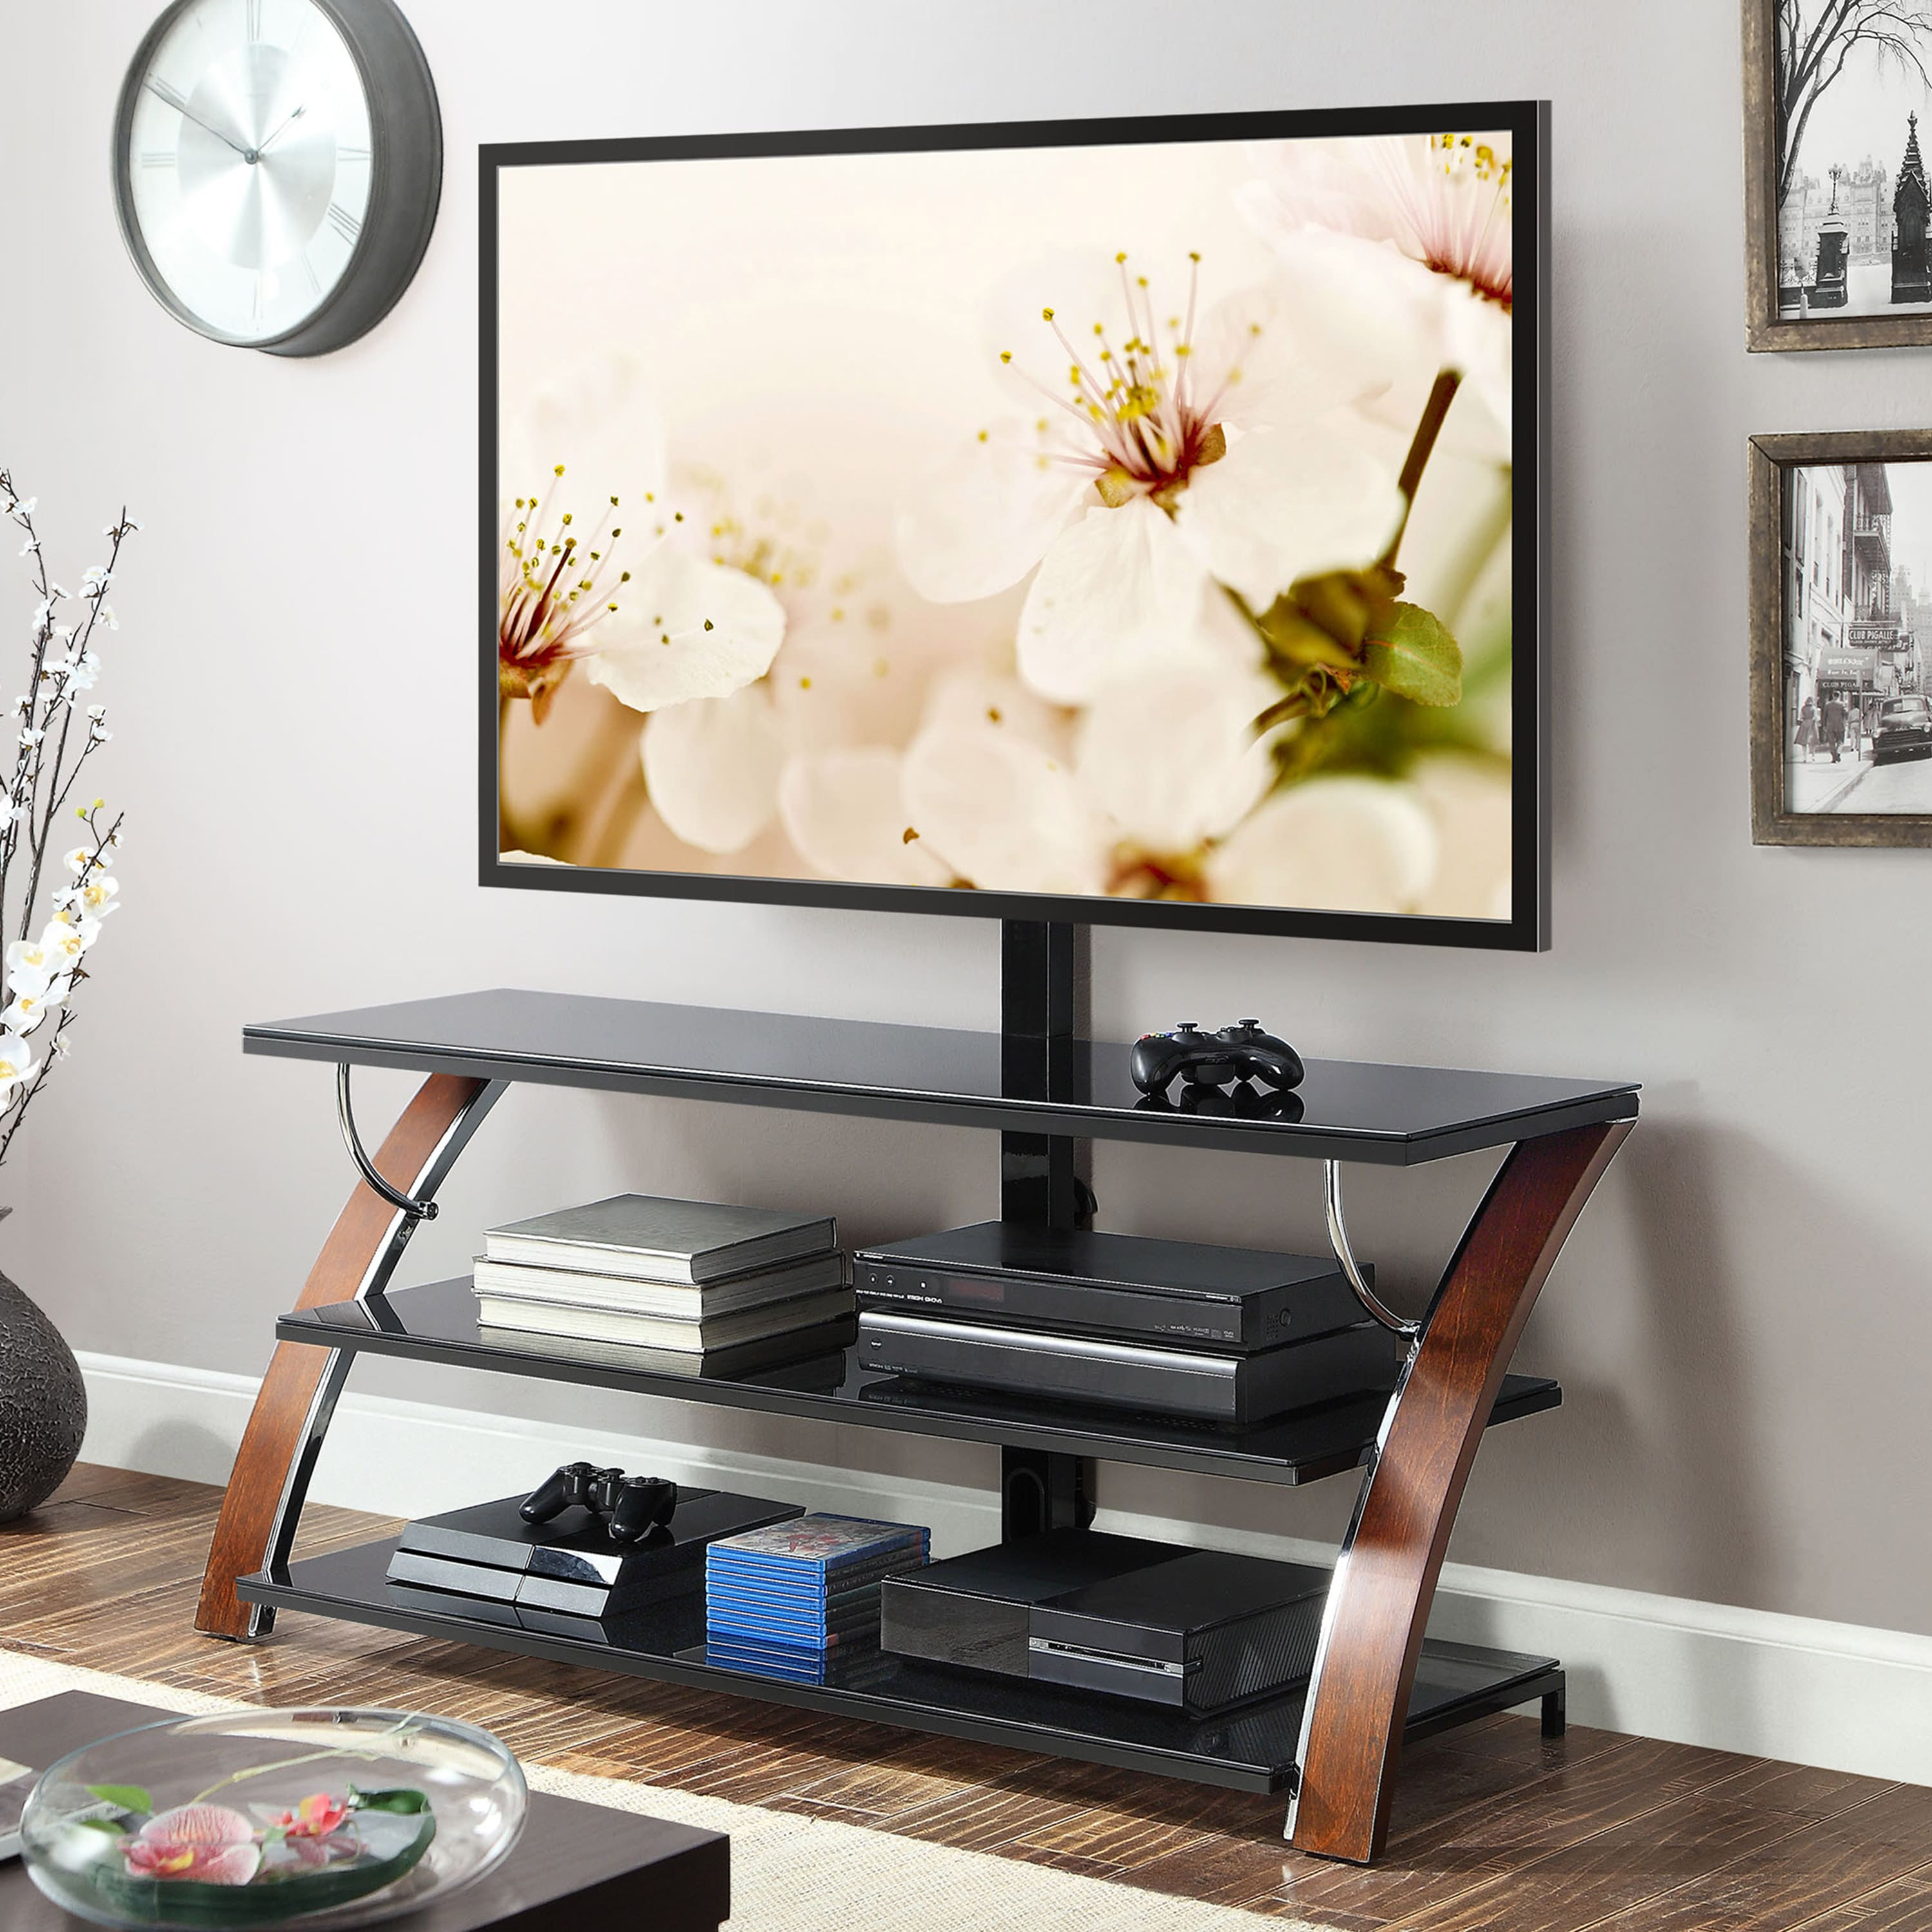 "Whalen Payton 3-in-1 Flat Panel TV Stand (up to 65"") $115 + Free Shipping"